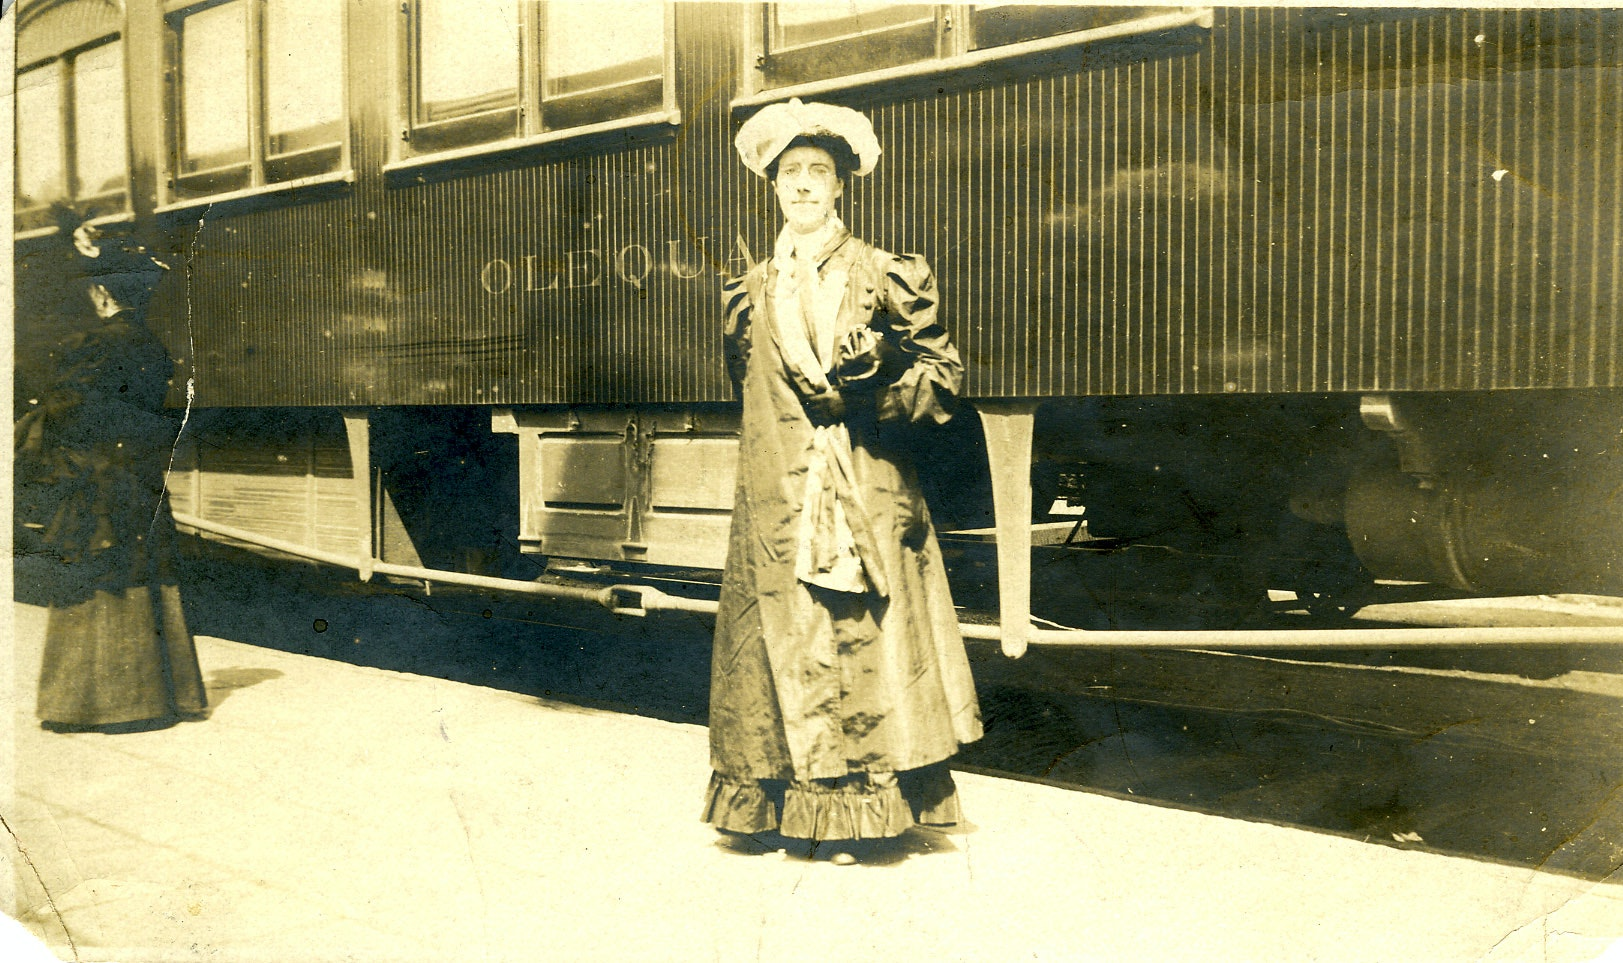 Portrait of Charlotte Perkins Gilman, standing outdoors in front of a train